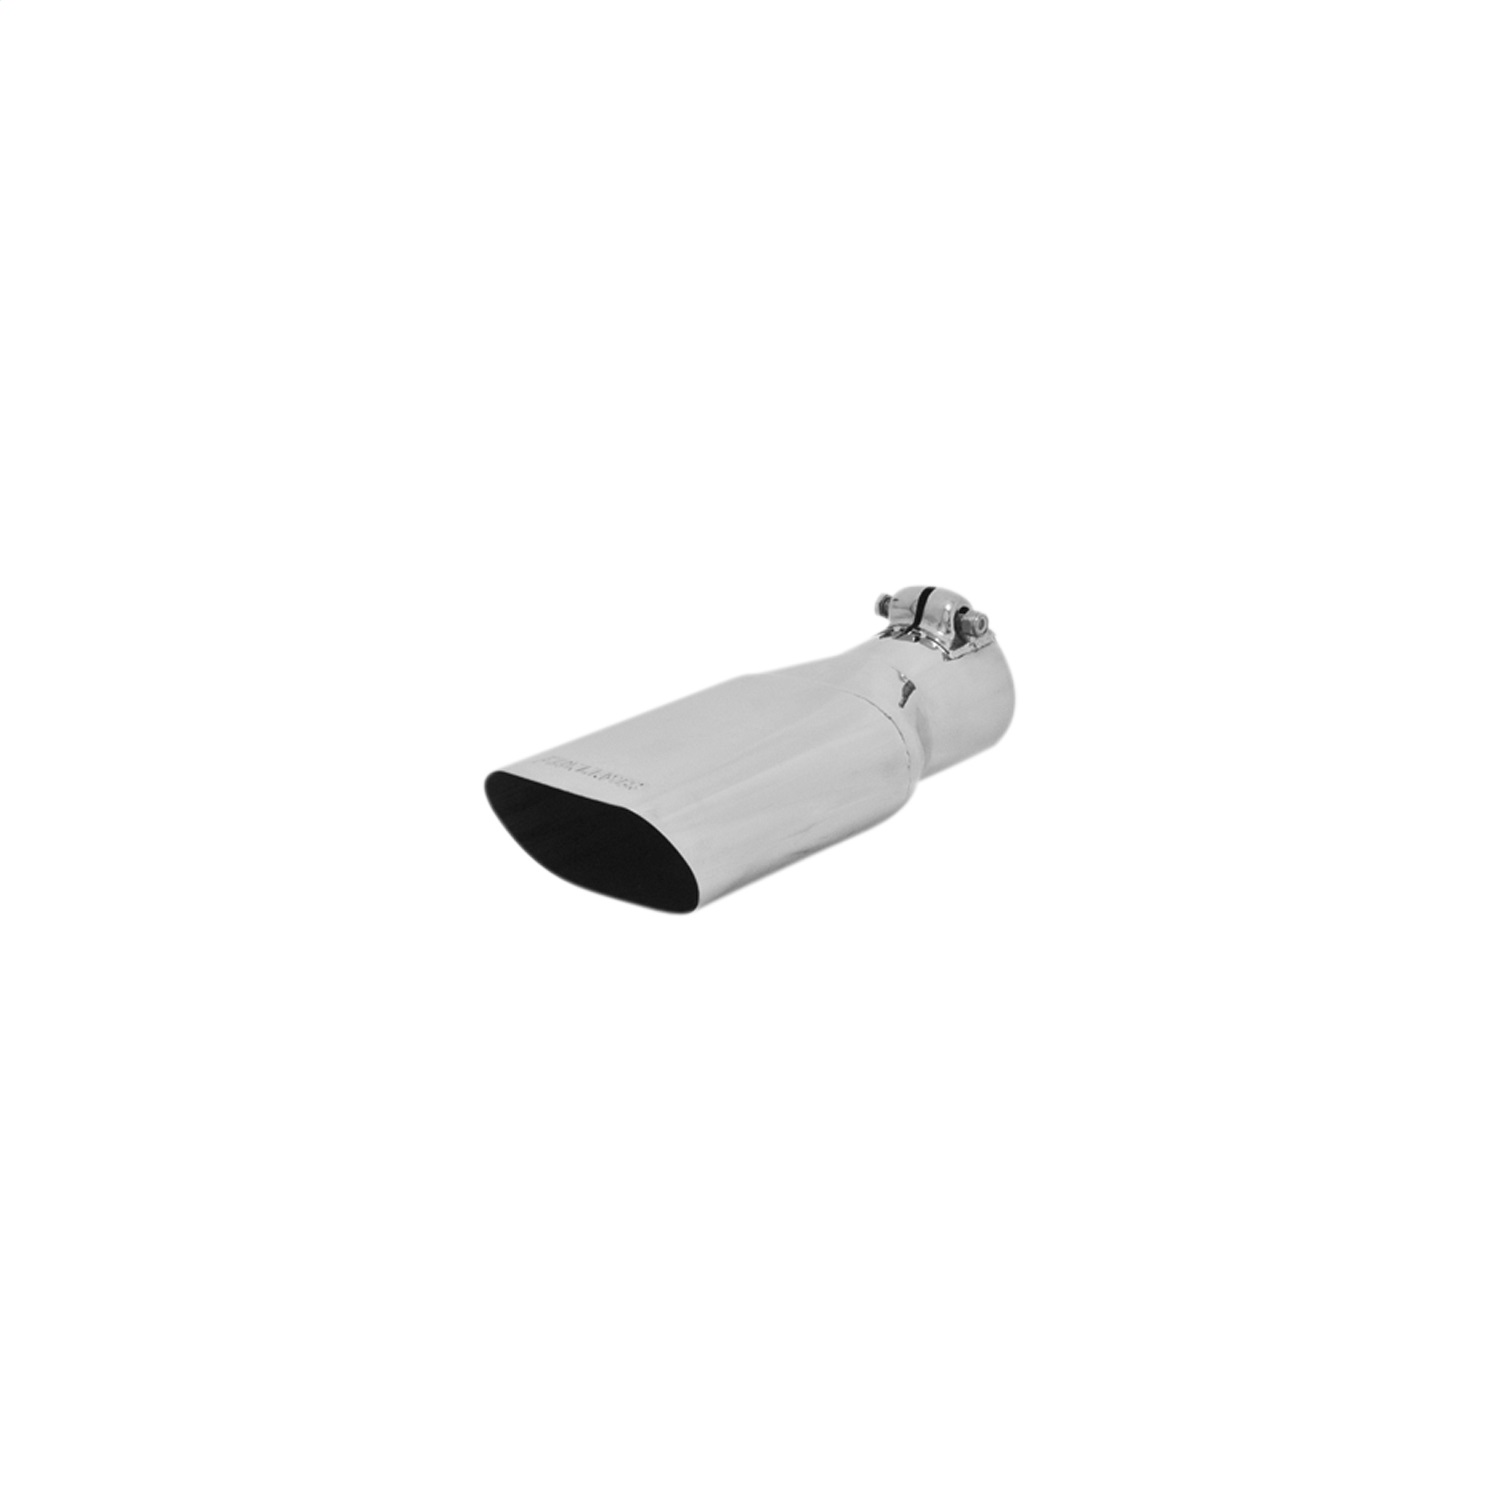 flowmaster 15385 exhaust tip 4 25 x 2 25 in oval polished ss fits 2 50 in tubing clamp on